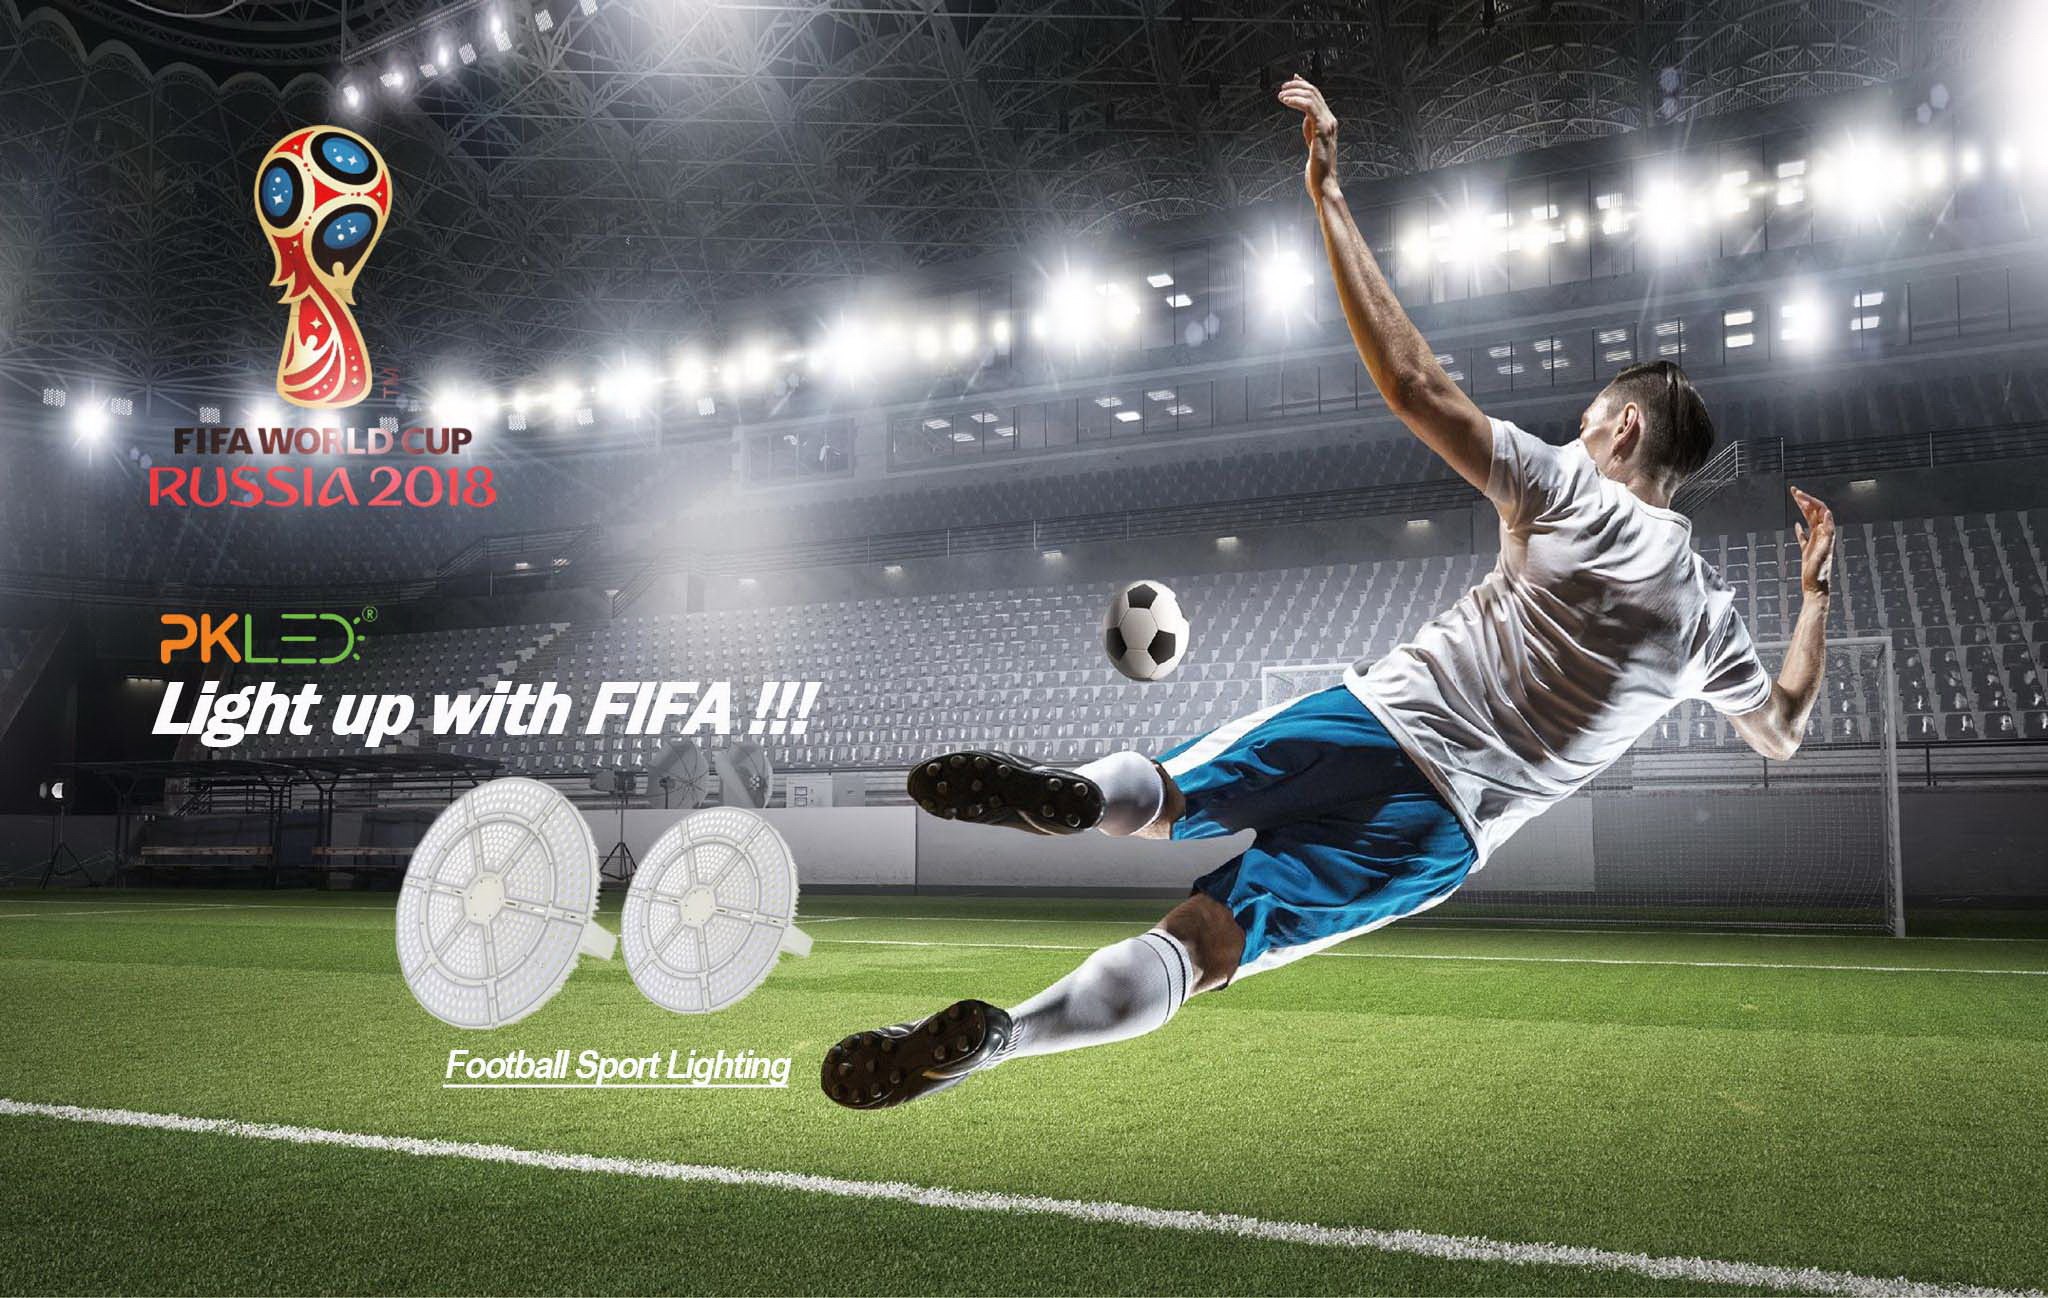 Light up with FIFA! Football LED Lights